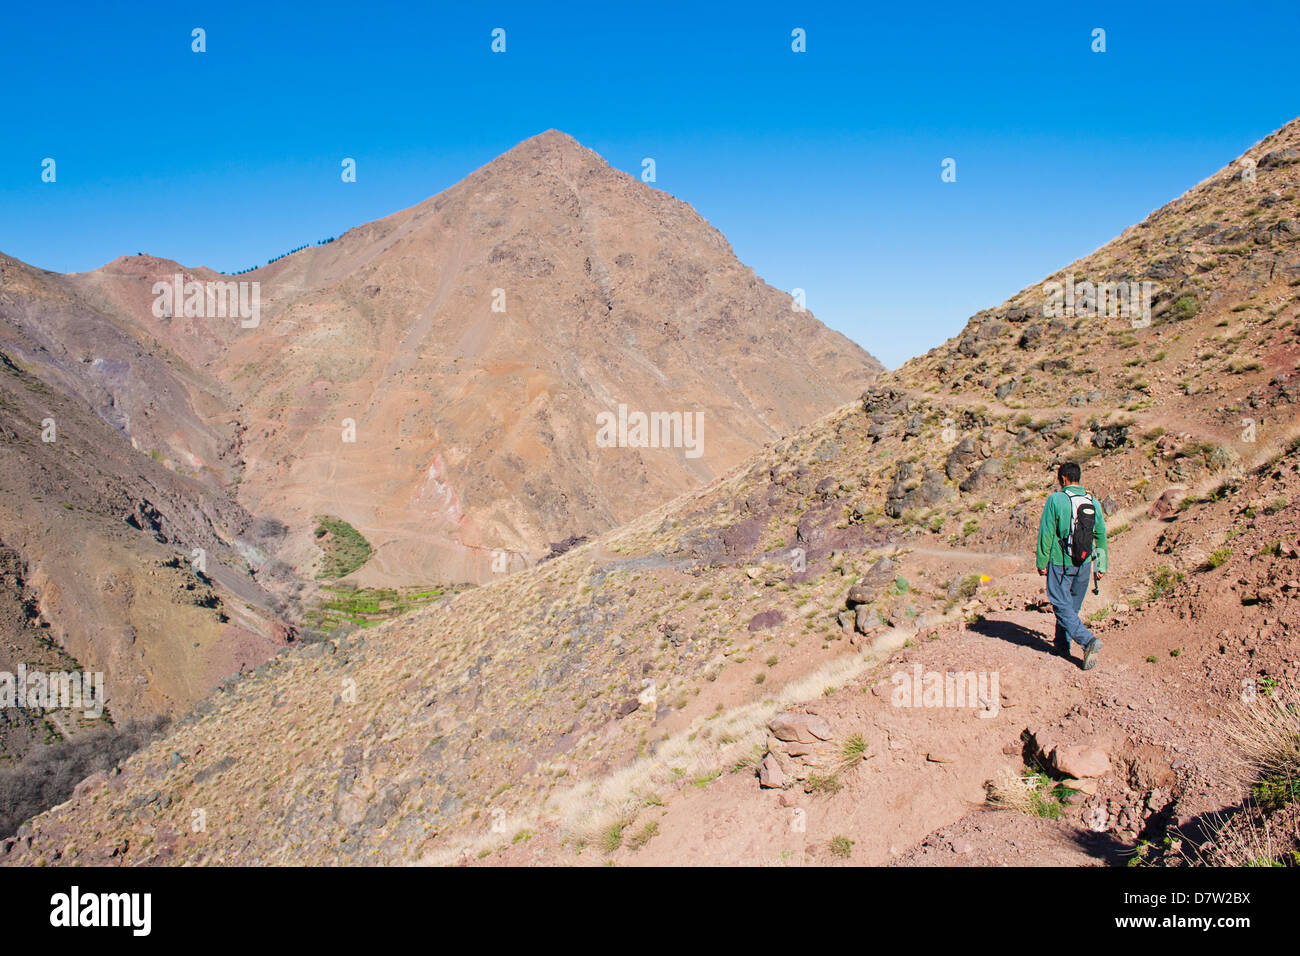 Tour guide trekking between Tacheddirt and Tizi n Tamatert, High Atlas Mountains, Morocco, North Africa - Stock Image